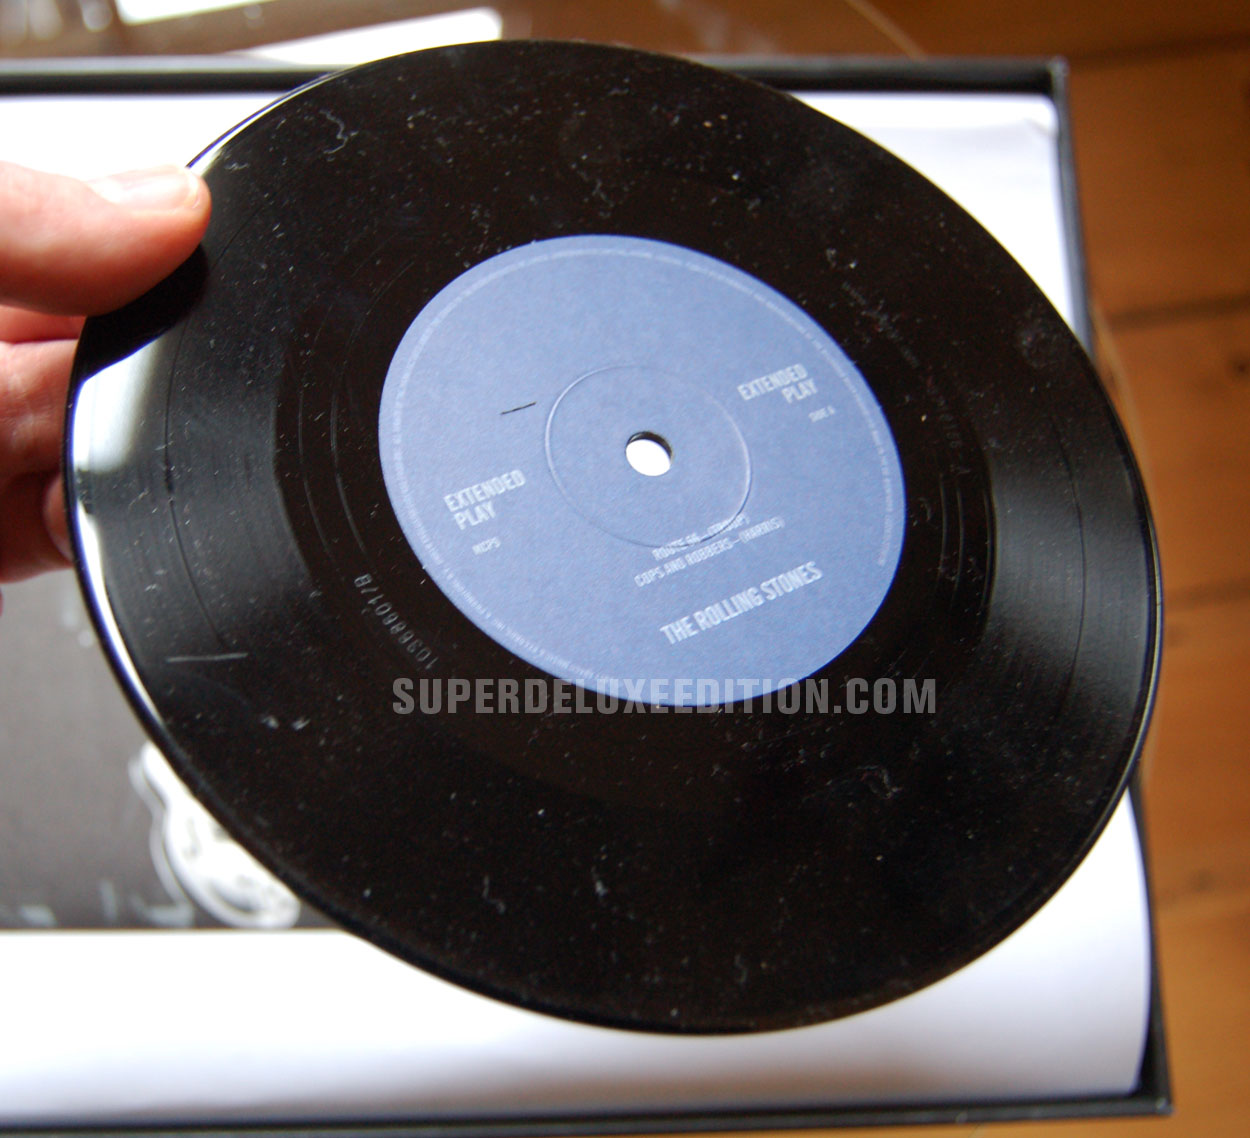 The Rolling Stones GRRR! Super Deluxe Edition